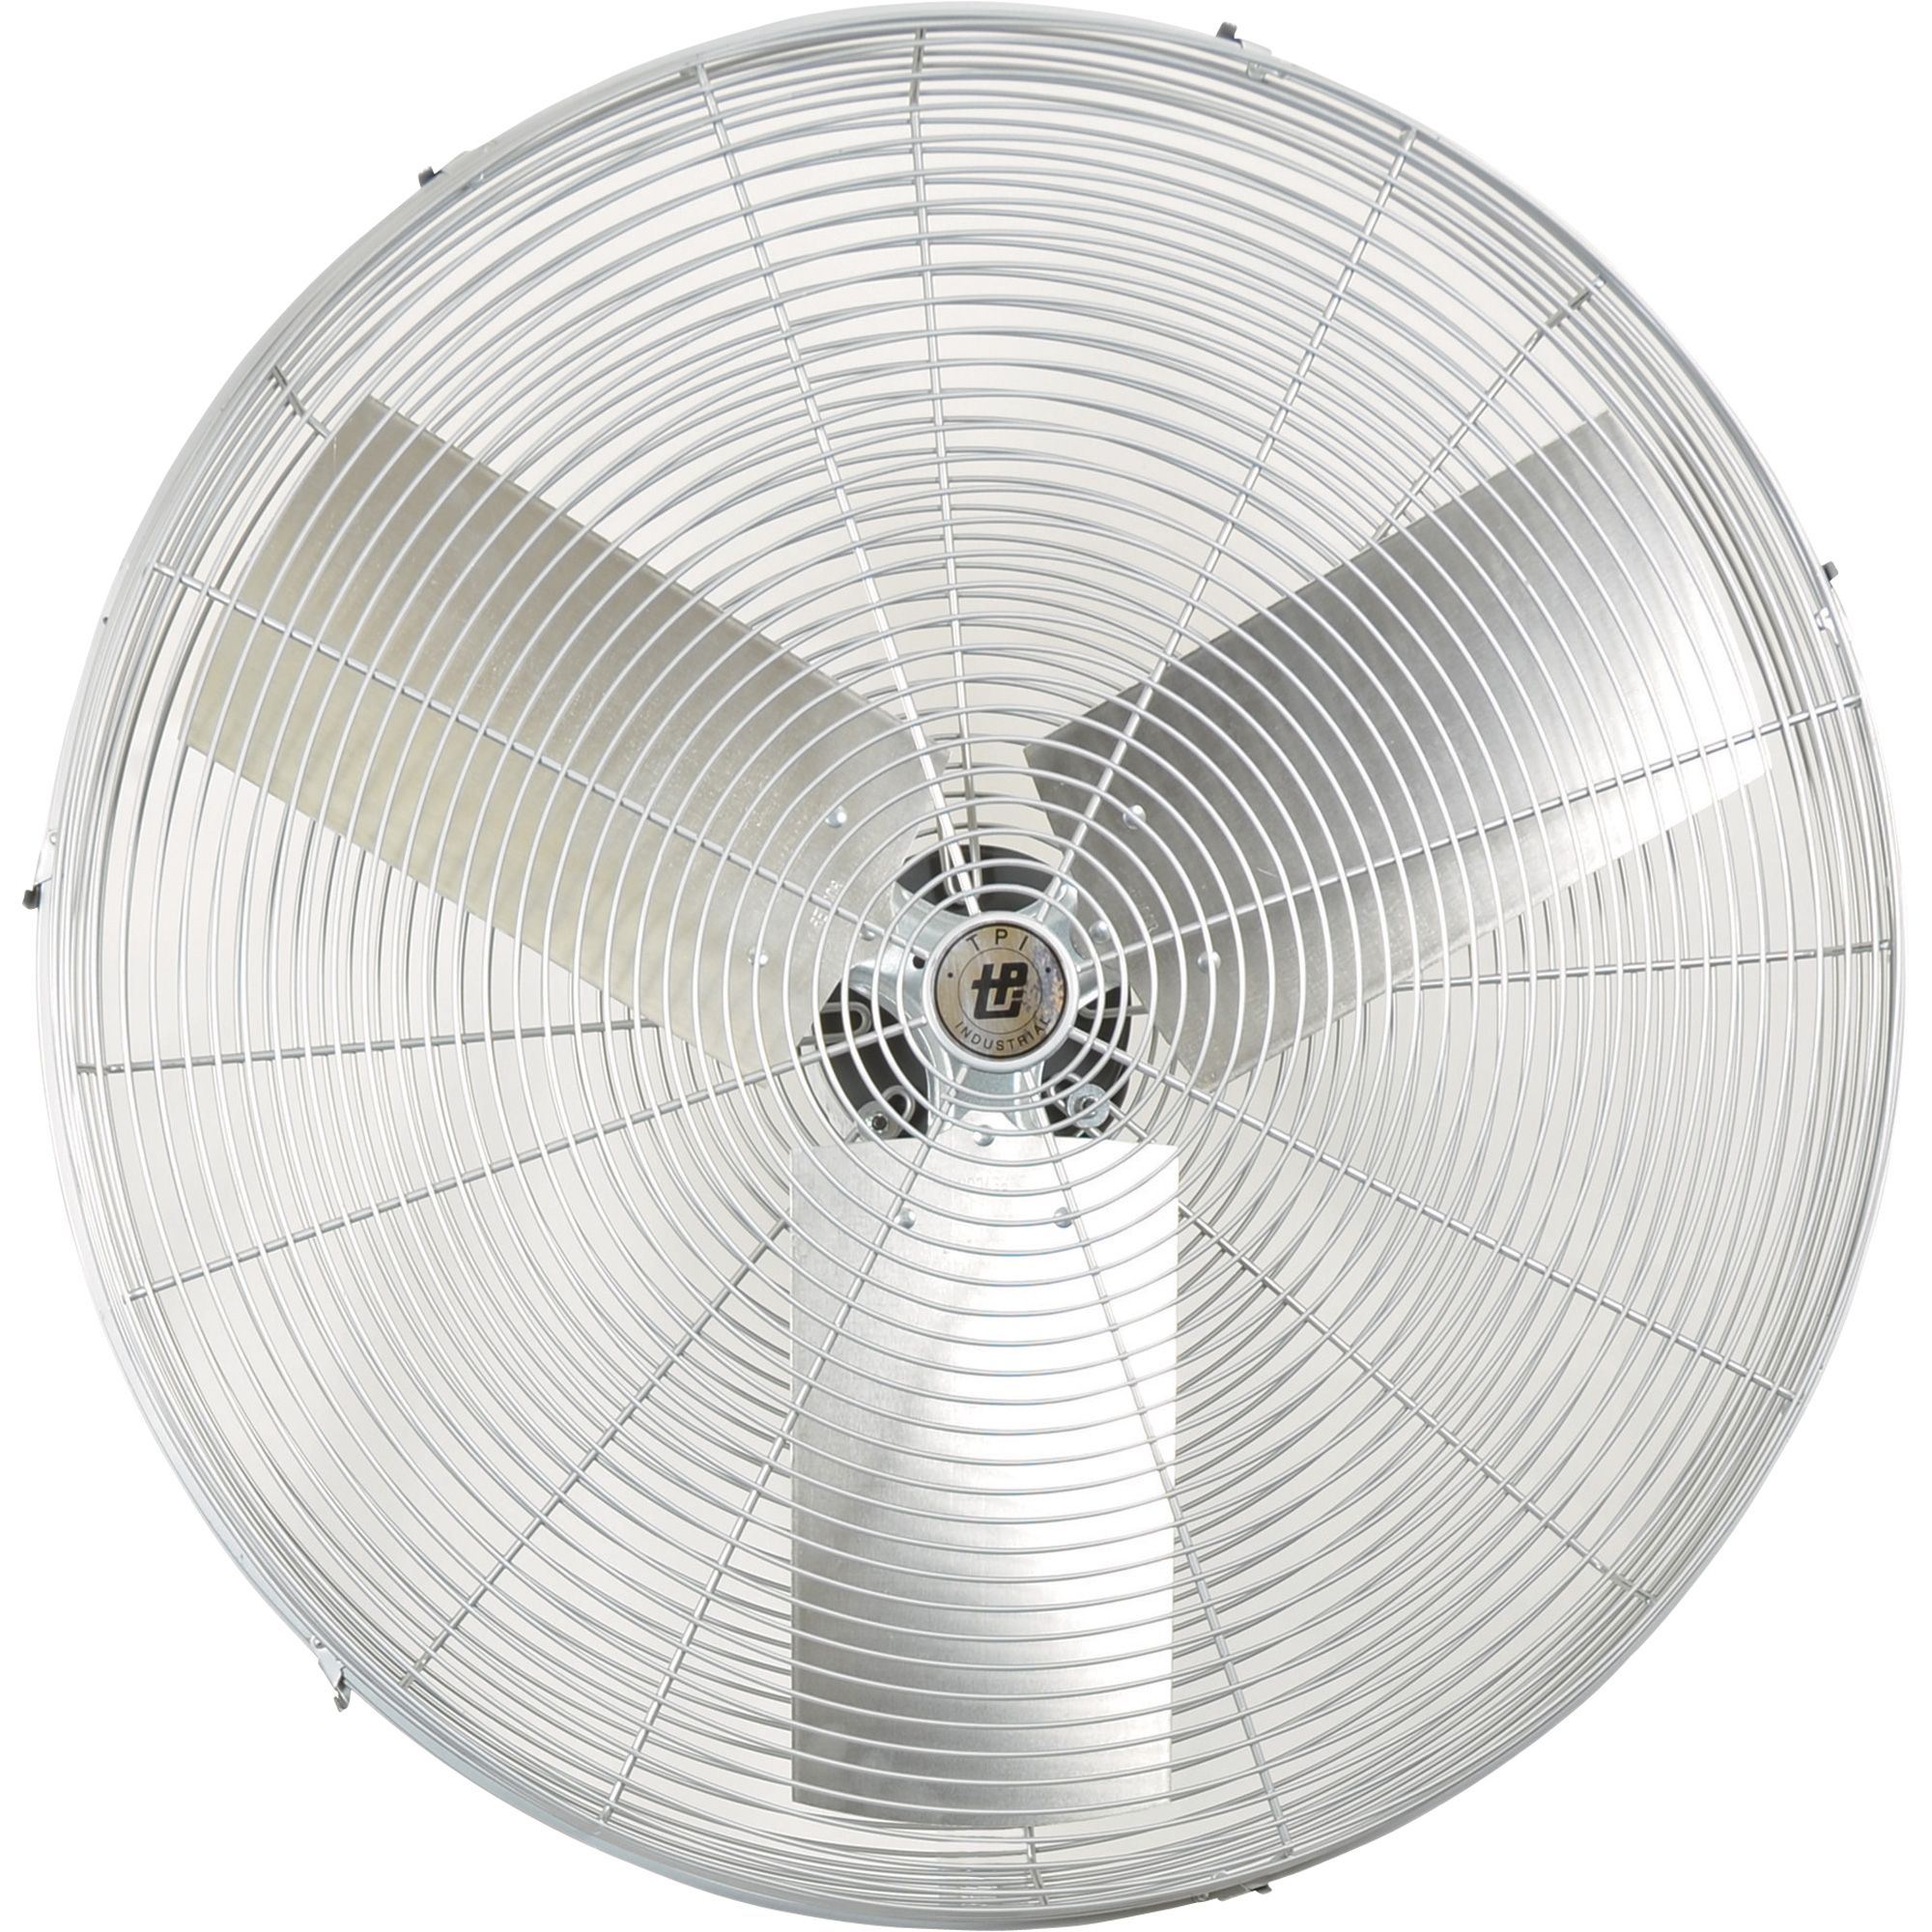 Tpi Industrial Wall Mounted Fan 30in 1 4 Hp 7 900 Cfm Model Acu 30 W In 2020 Wall Mounted Fan Industrial Wall Fan